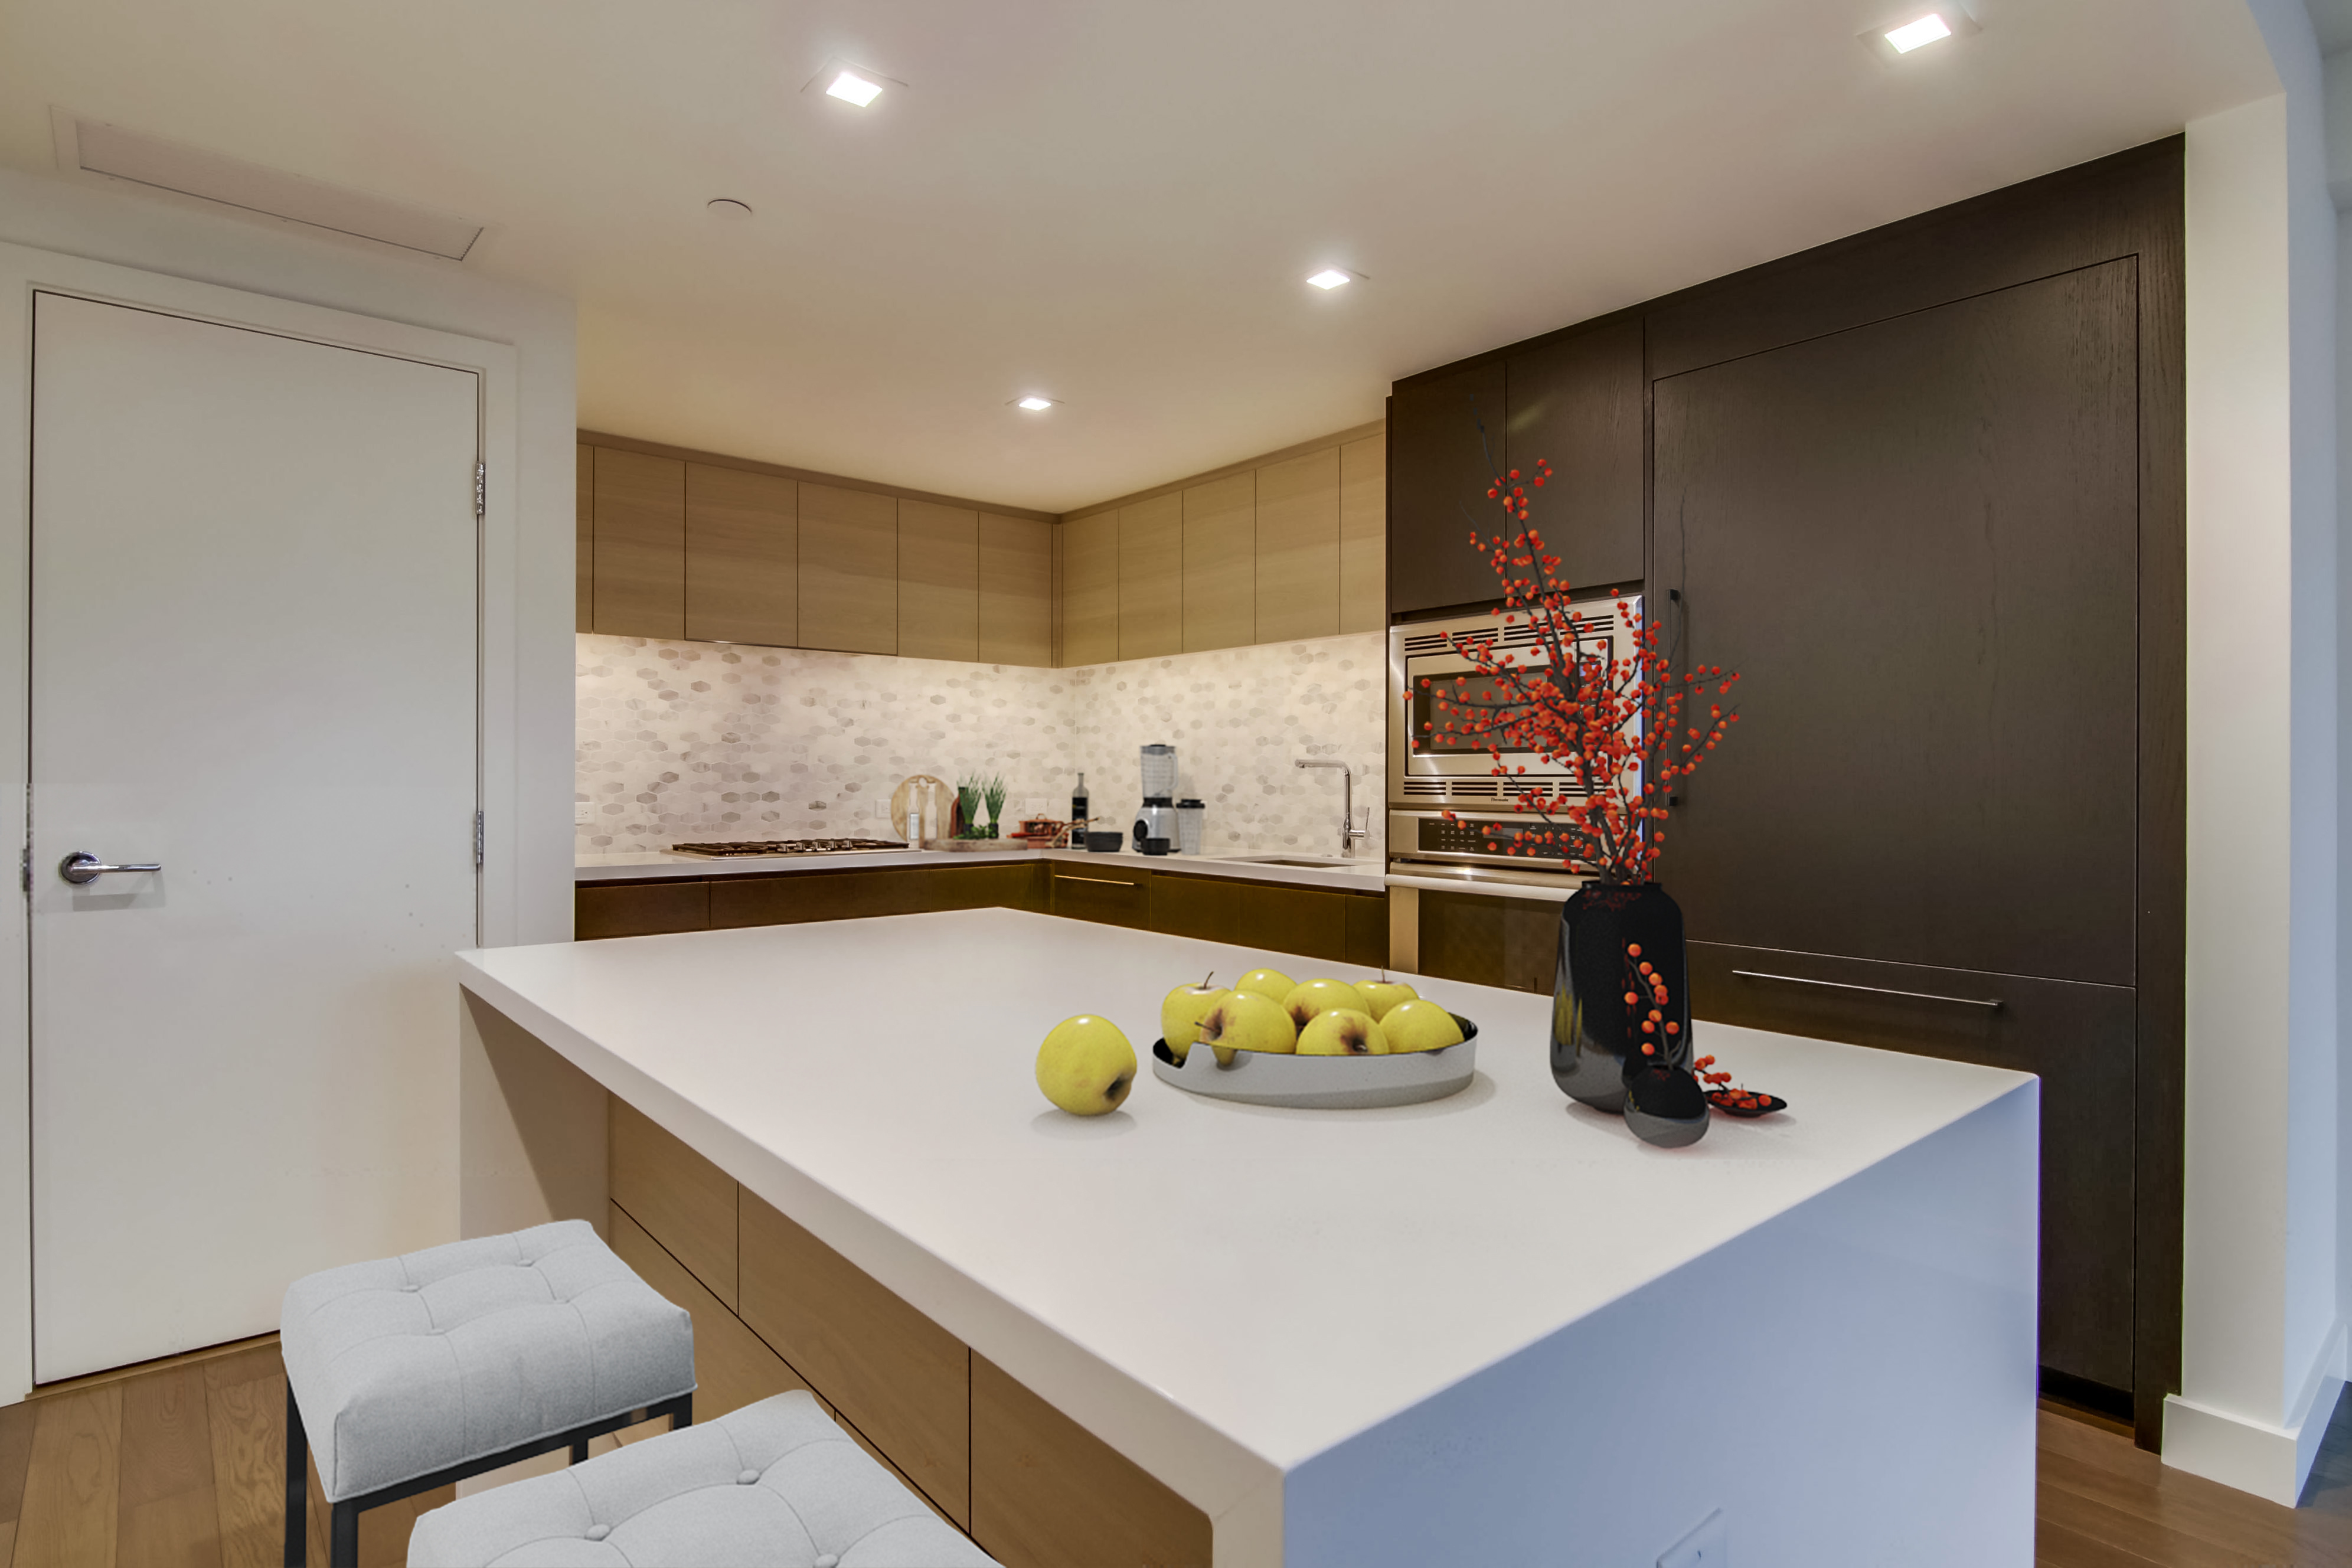 Picture of Kitchen in Savina Condos